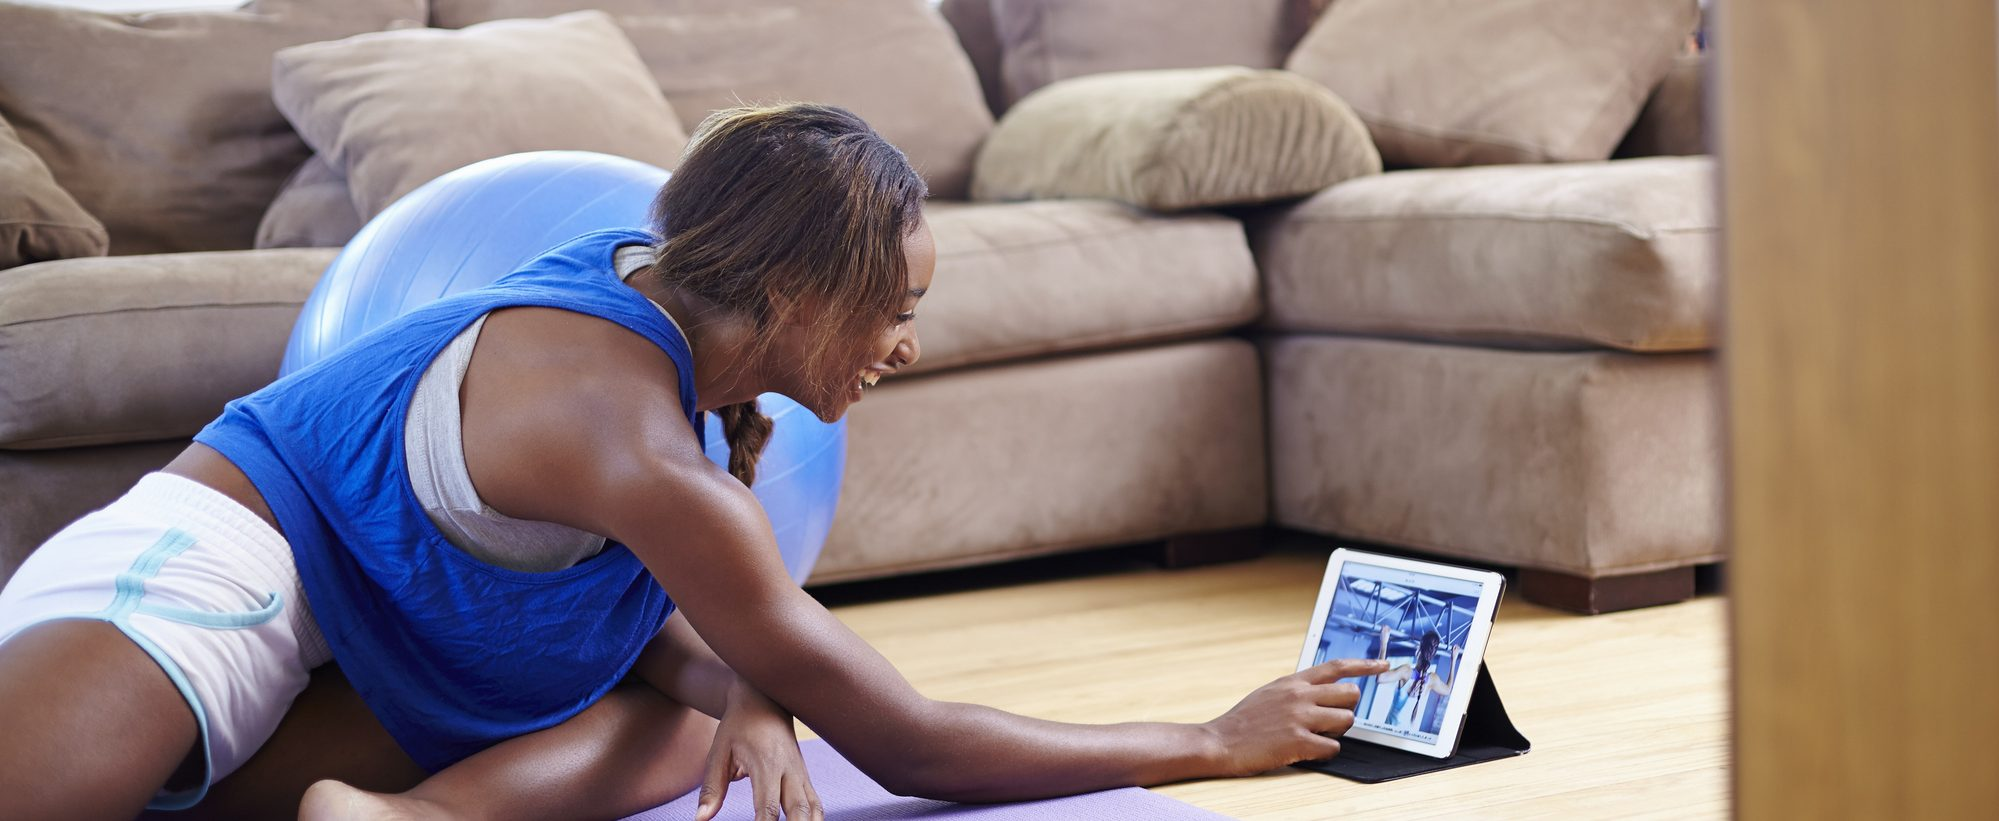 Working out at home is a cost-effective way to stay in shape